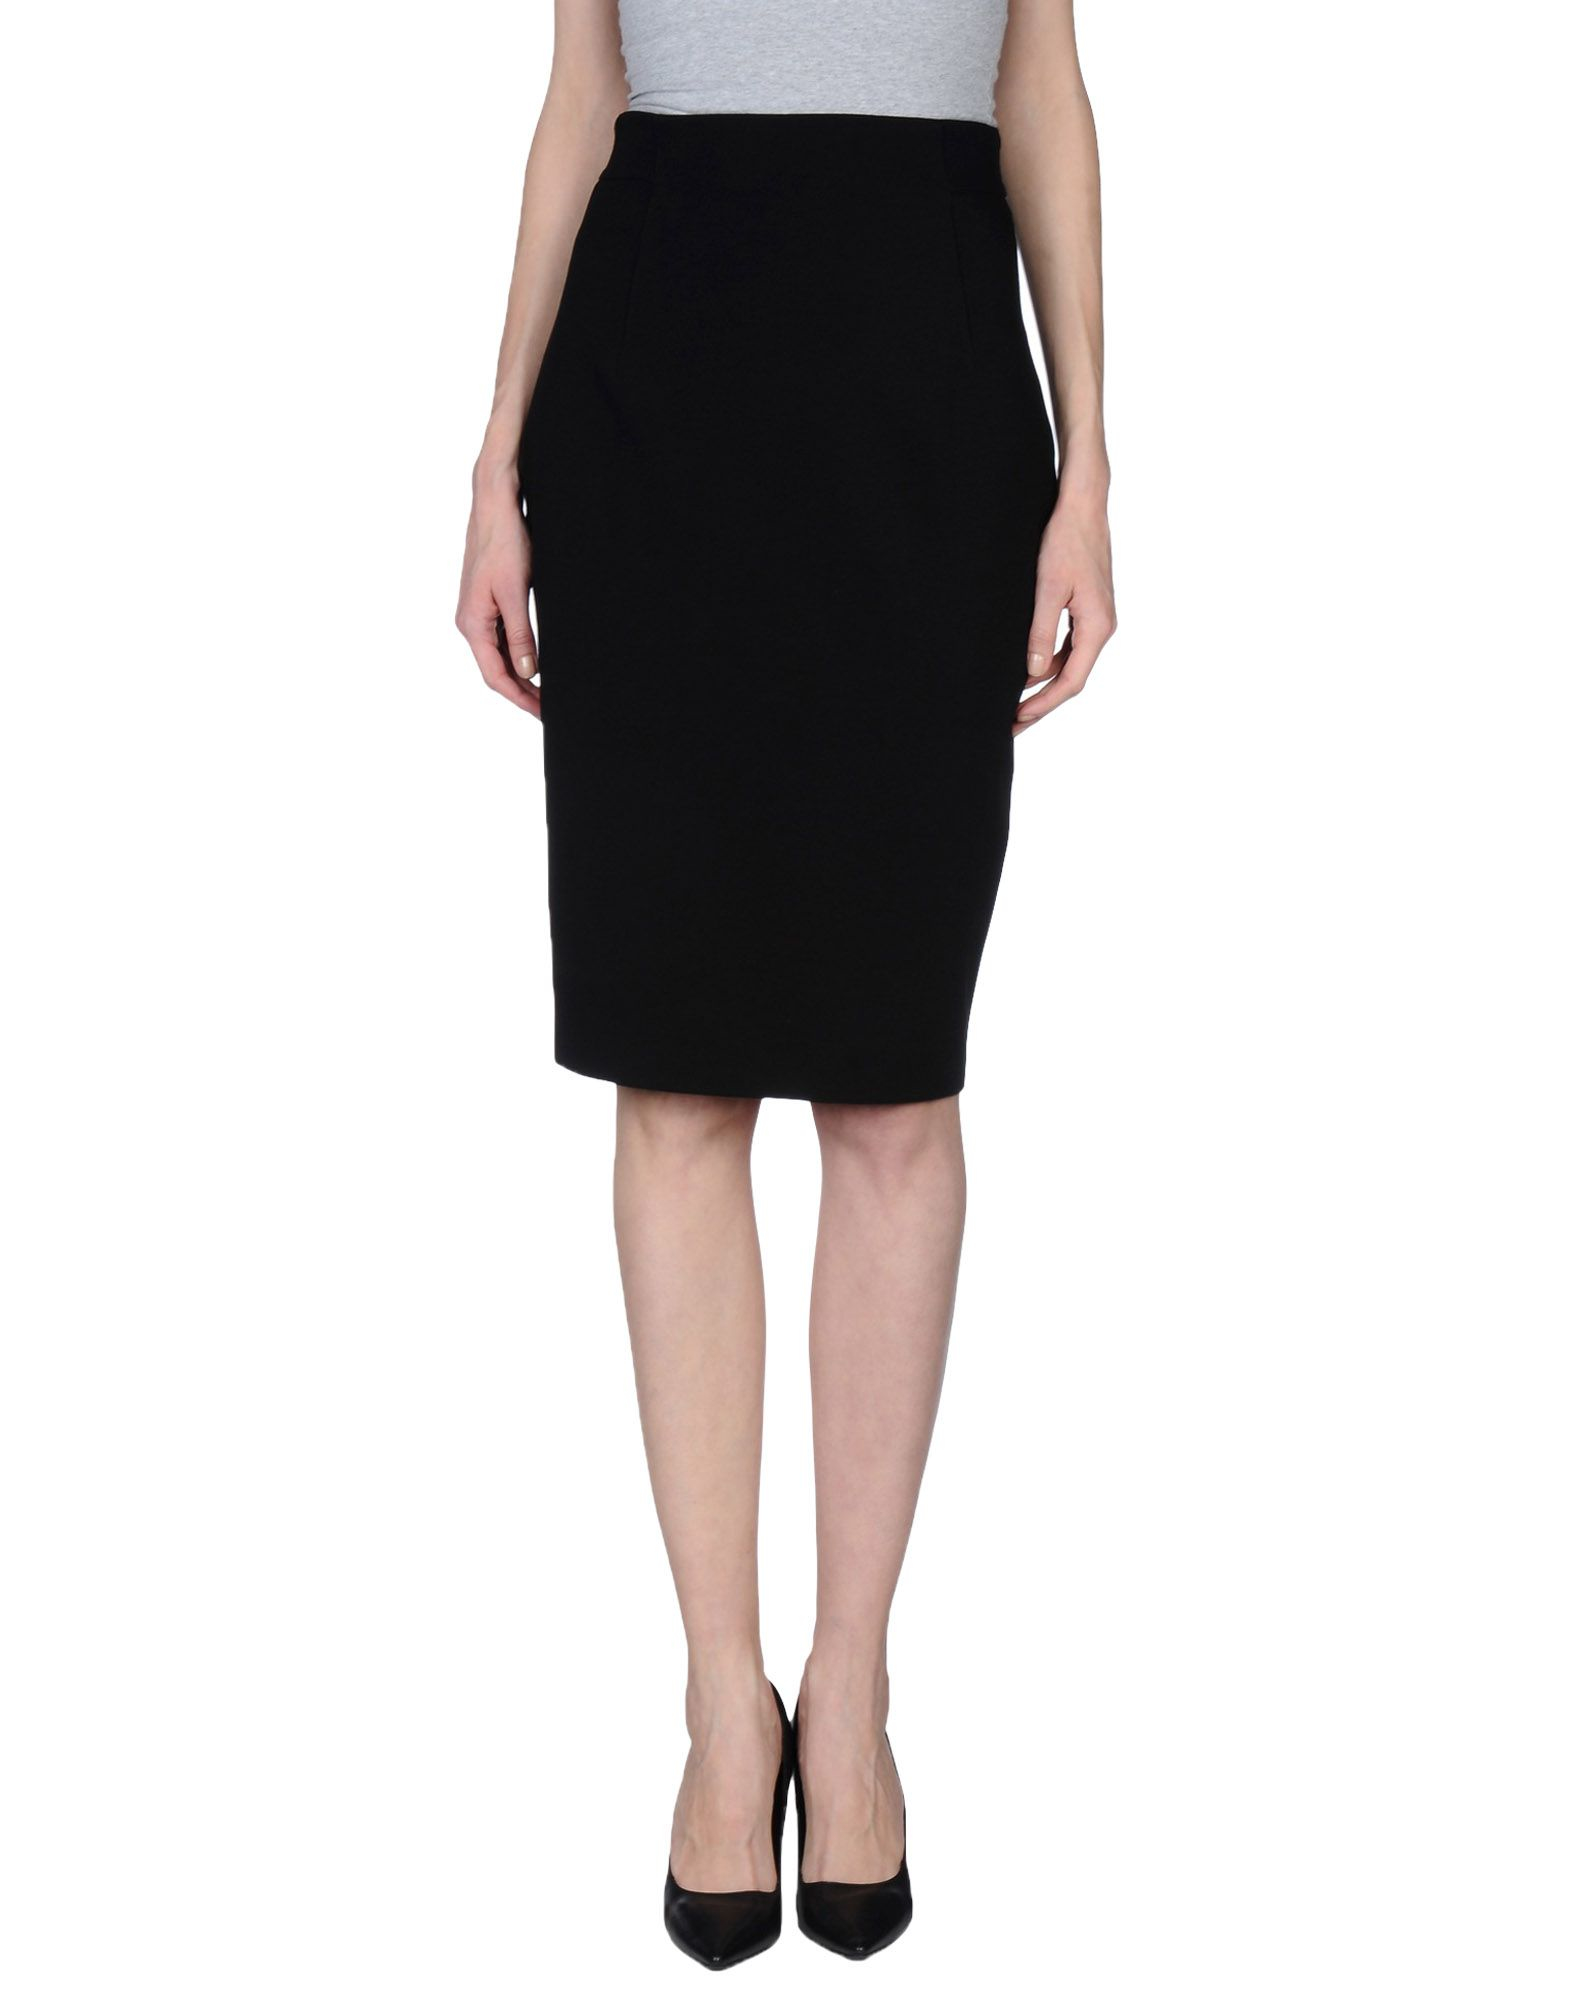 plein sud knee length skirt in black lyst